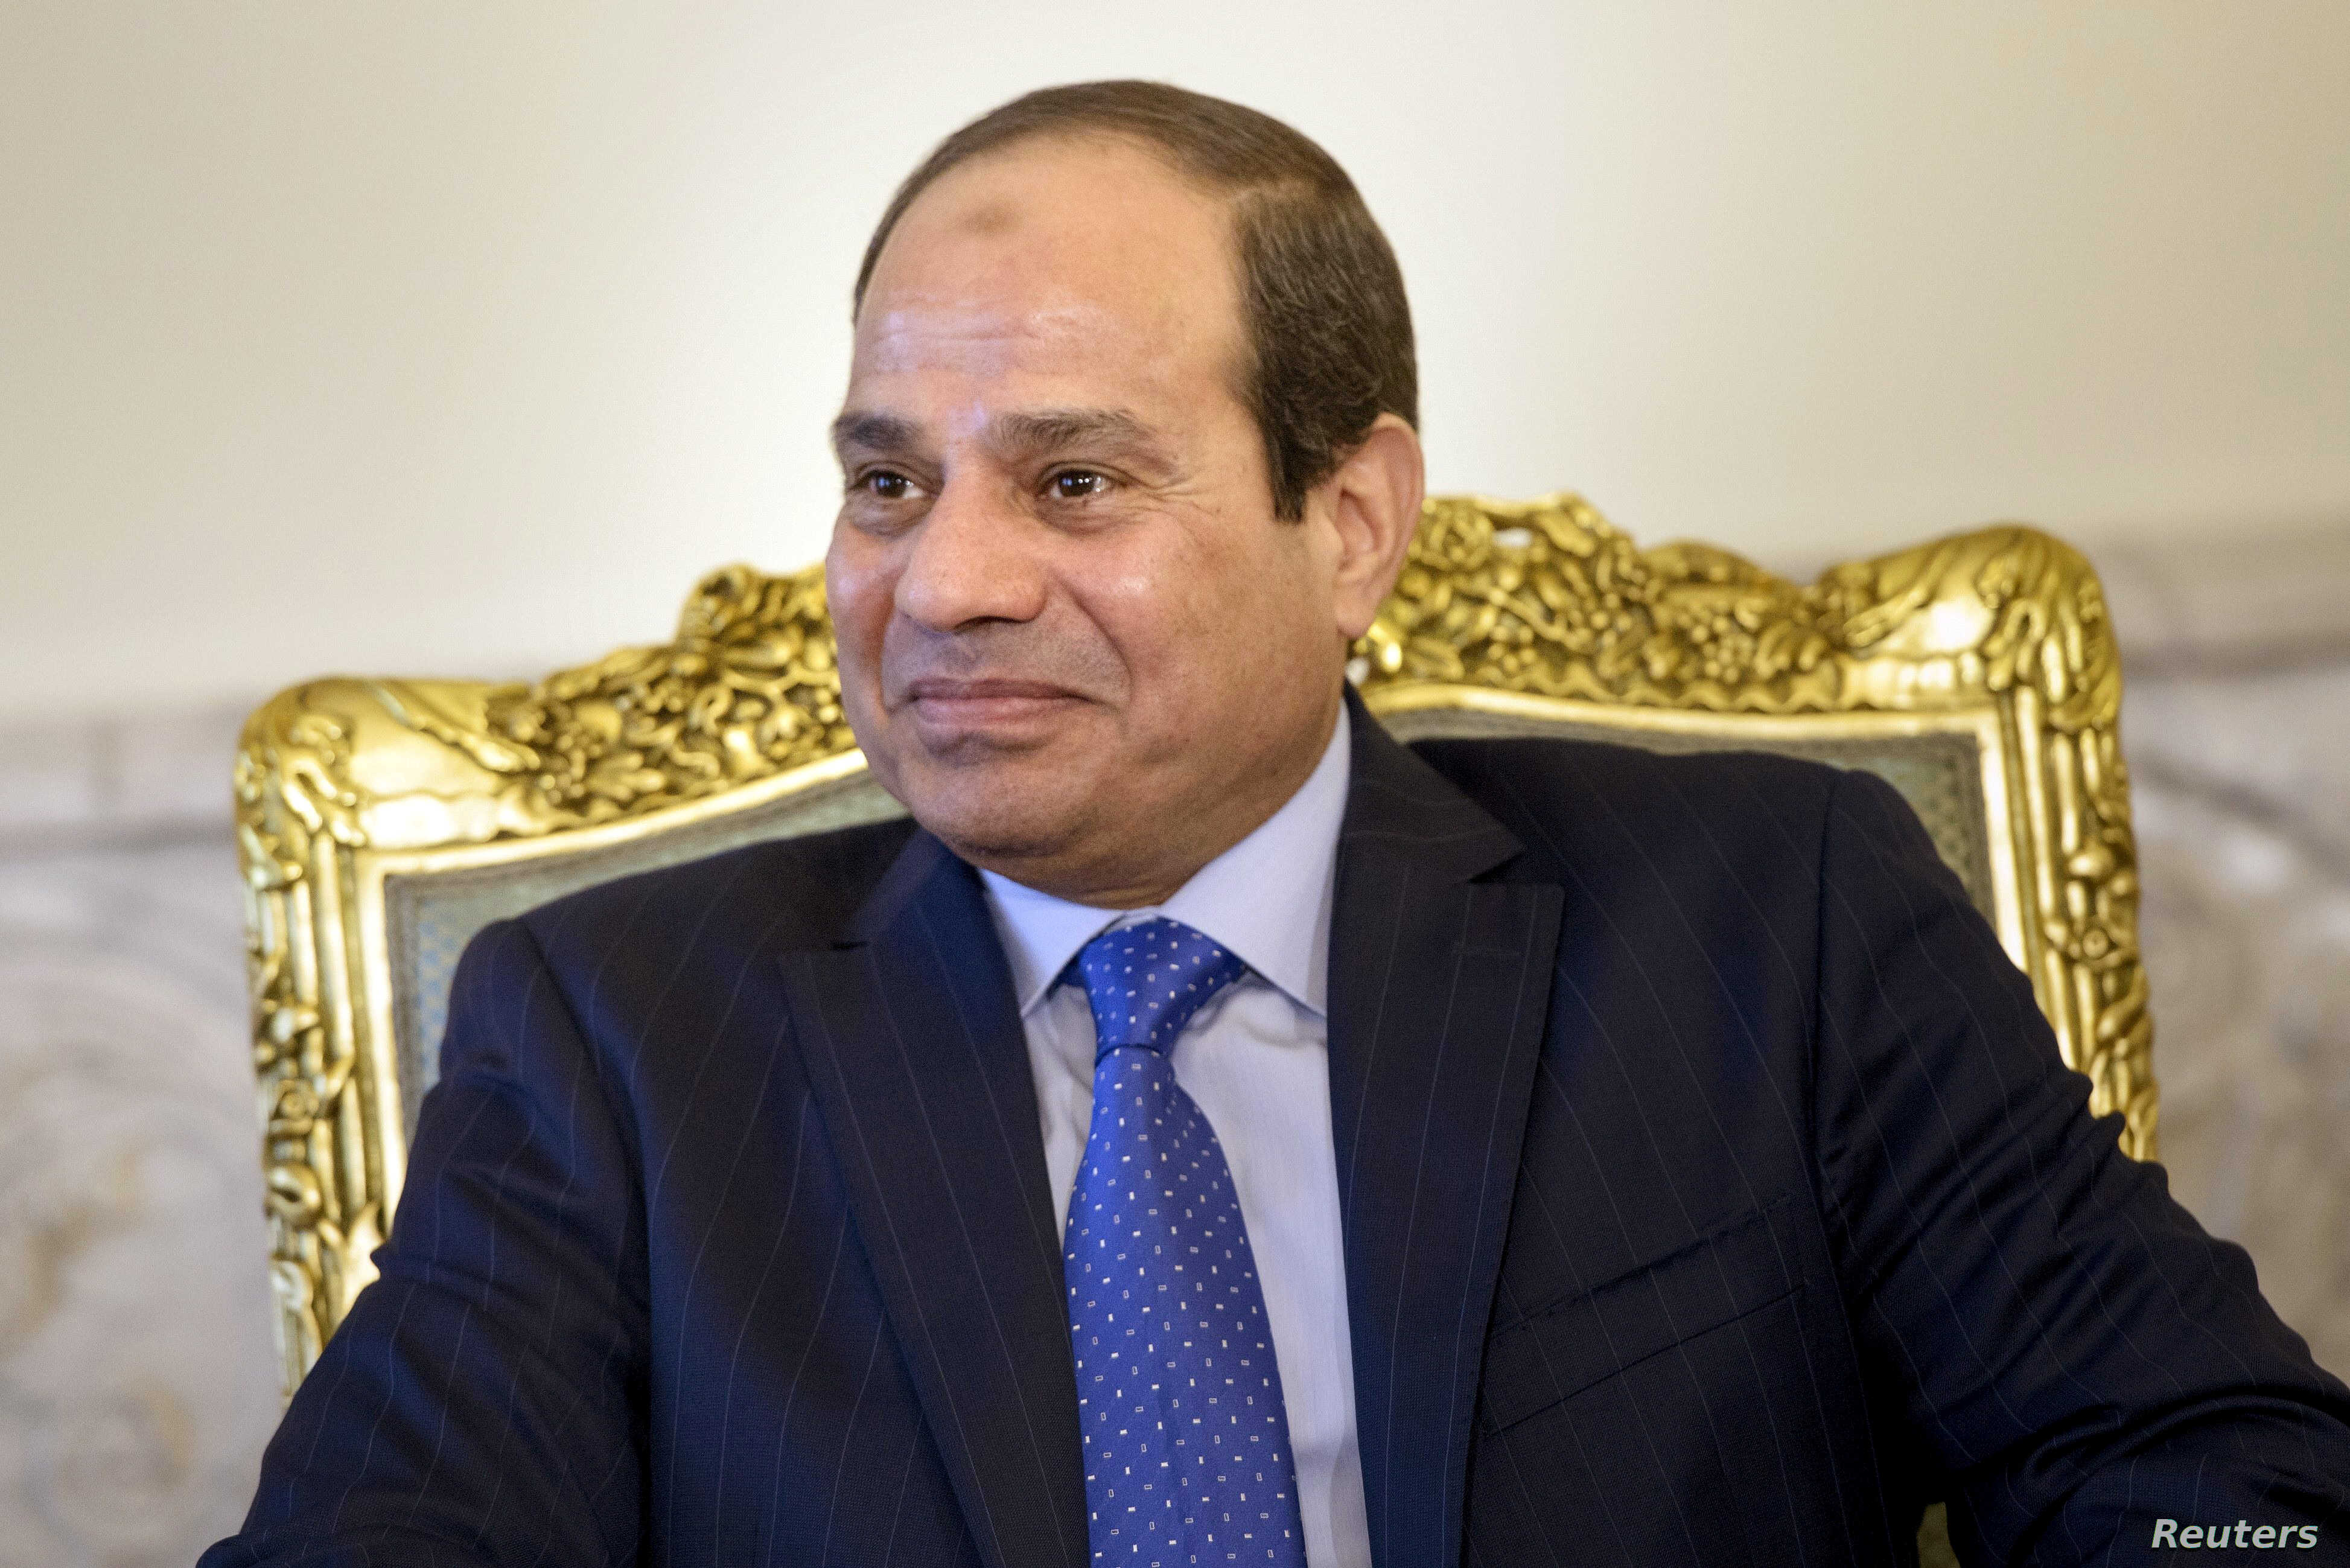 Egypt's President Abdel Fattah al-Sisi sits before a meeting at the presidential palace in Cairo Aug. 2, 2015.